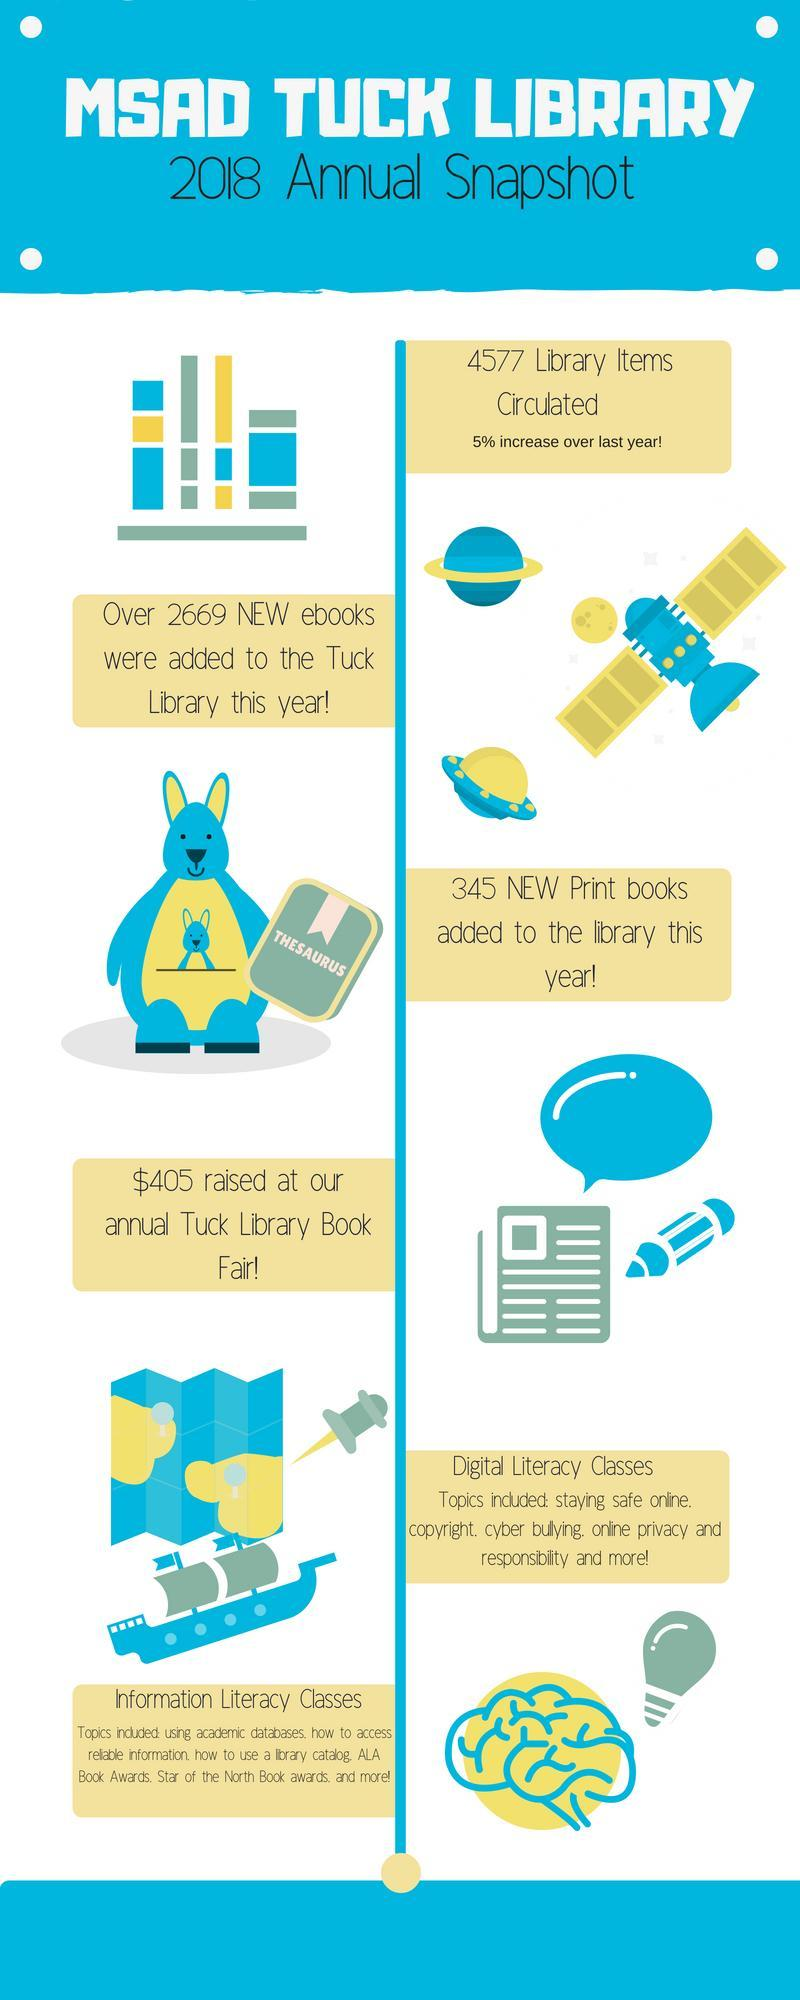 MSAD Tuck Library 2017-2018 Annual Report 4577 Library Items Circulated  5% increase from last yearOver 2669 NEW ebooks were added to the Tuck Library this year! 345 NEW Print books added to the library this year! $405 raised at our annual Tuck Library Book Fair!